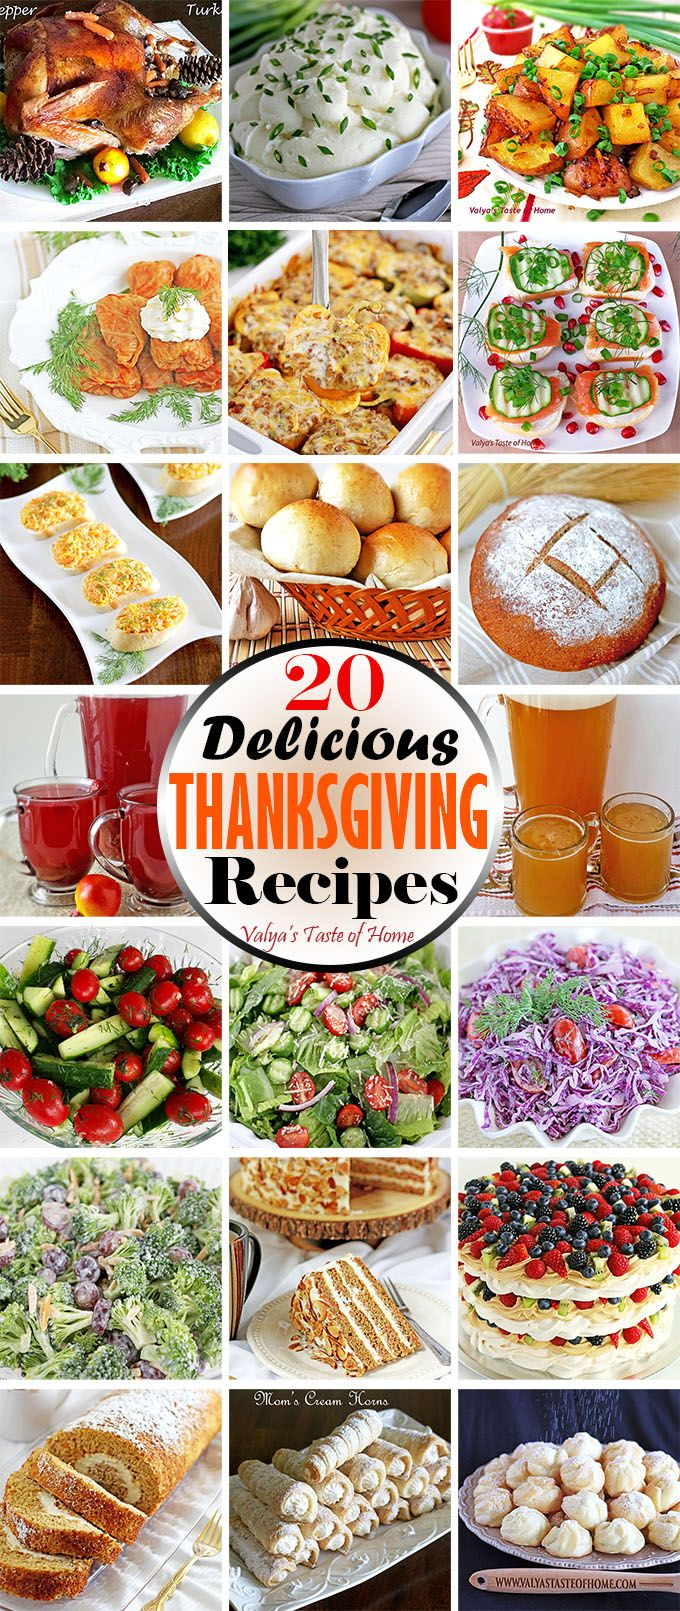 17 Best Images About Party Ideas Thanksgiving On Pinterest